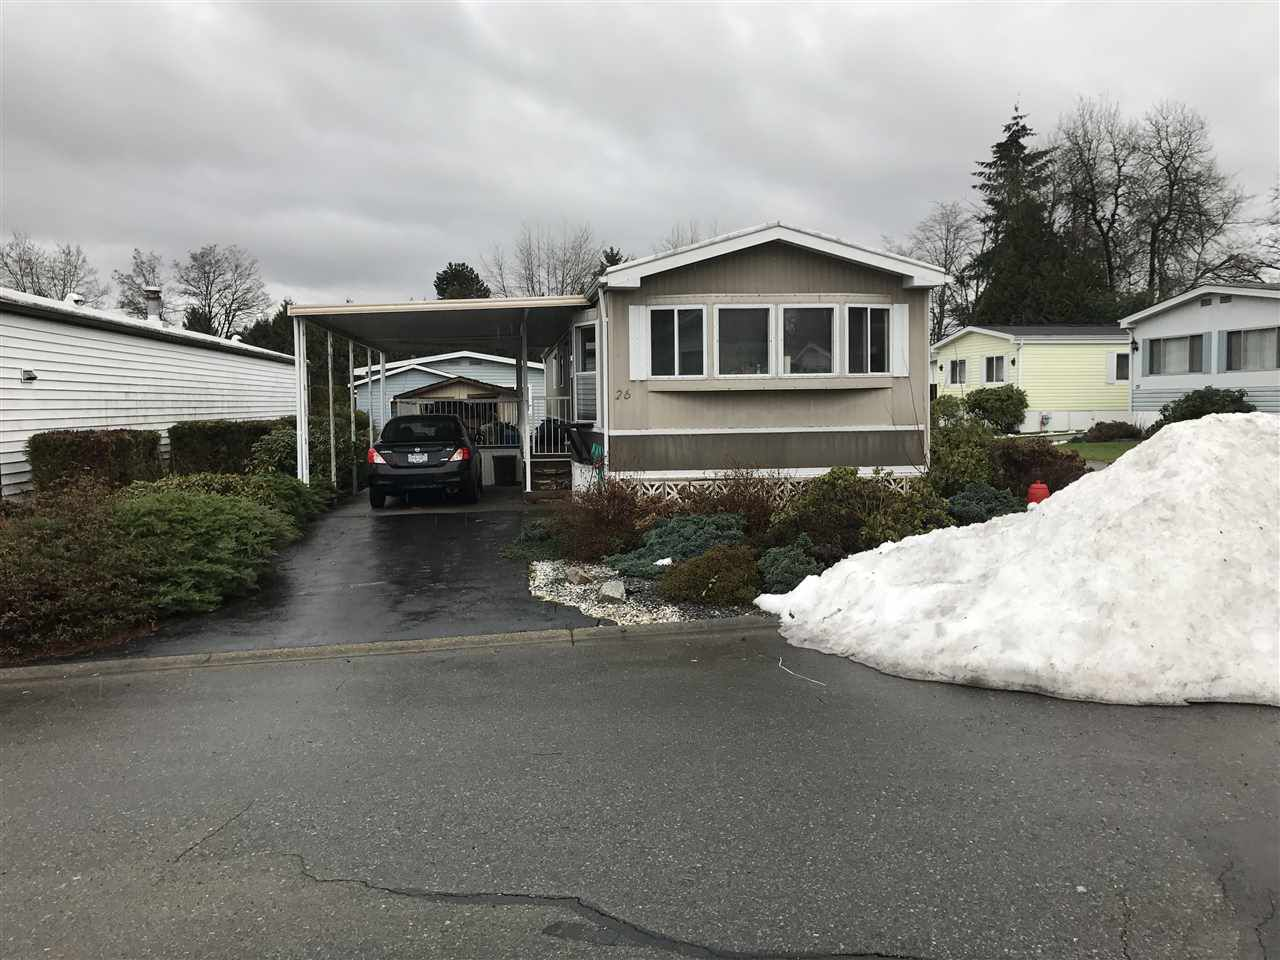 Main Photo: 26 13507 81 Avenue in Surrey: Queen Mary Park Surrey Manufactured Home for sale : MLS®# R2134405